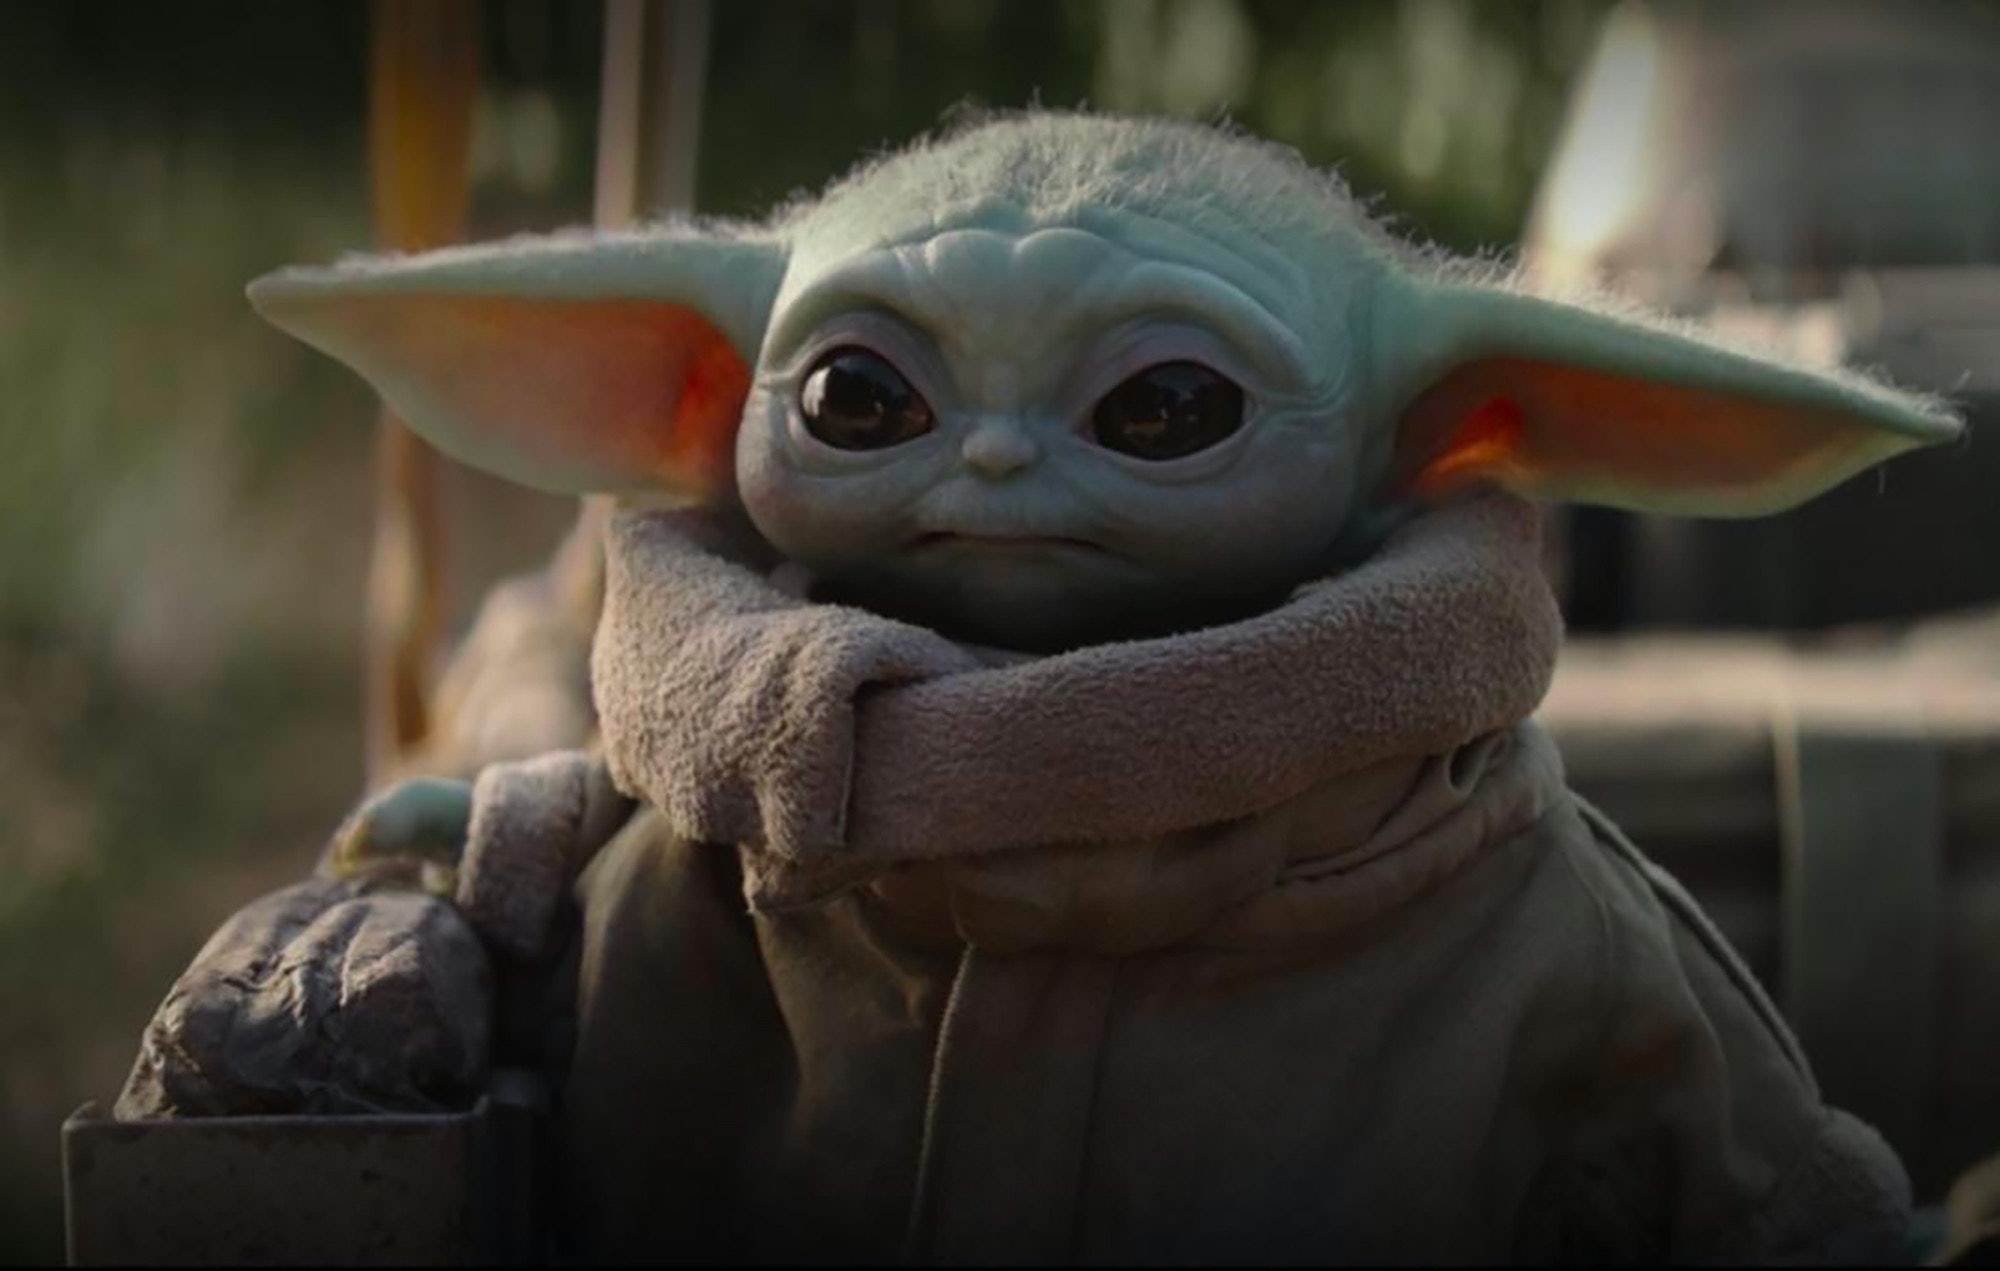 These Baby Yoda Loungewear Pieces Will Keep You Cozy & Cute AF All Winter